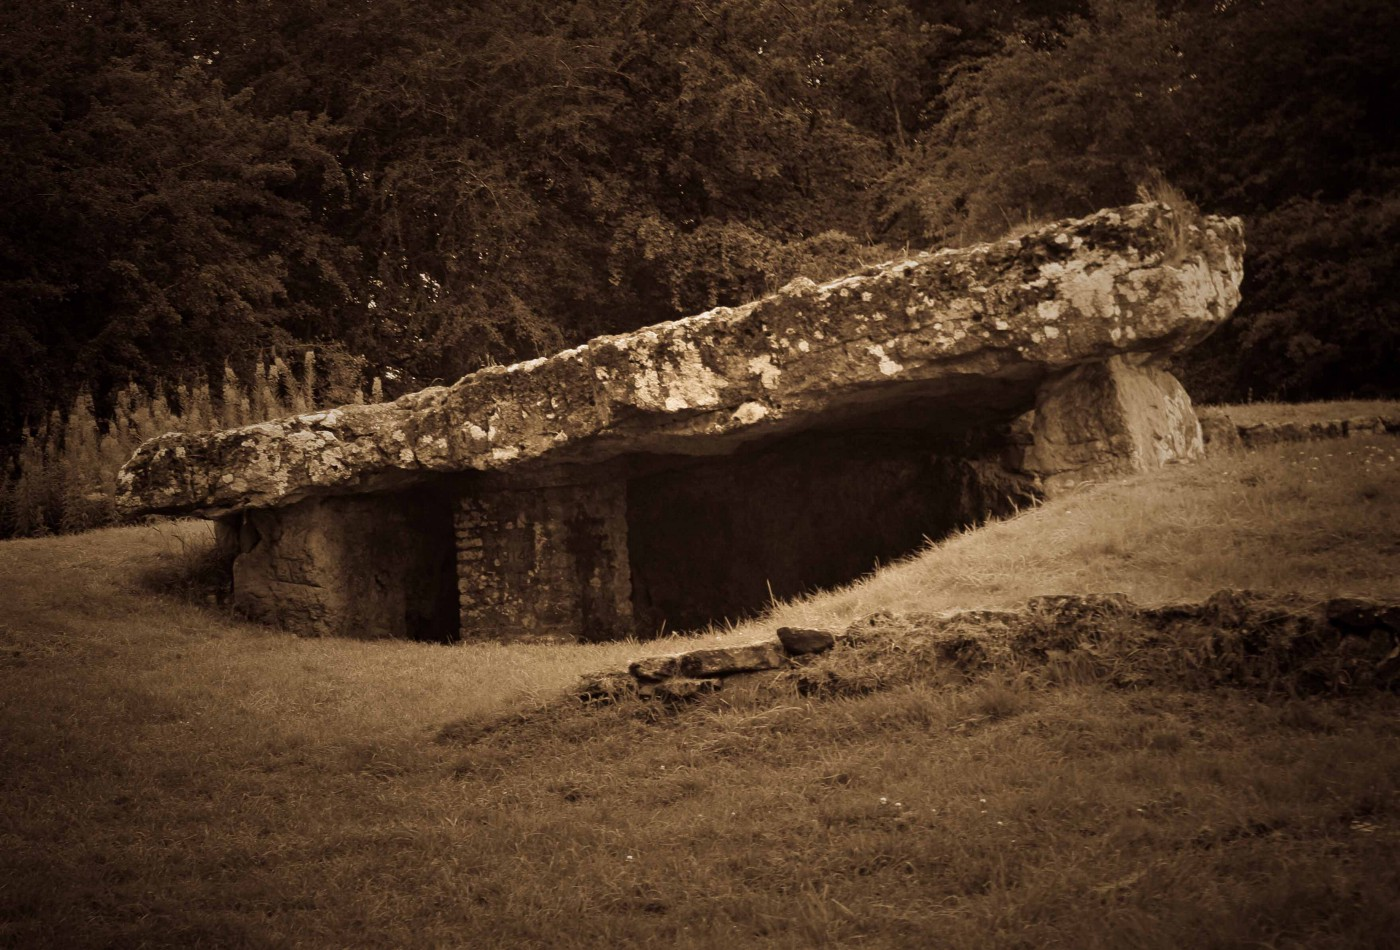 Photo of Tinkinswood Burial Chamber in sepia tones.